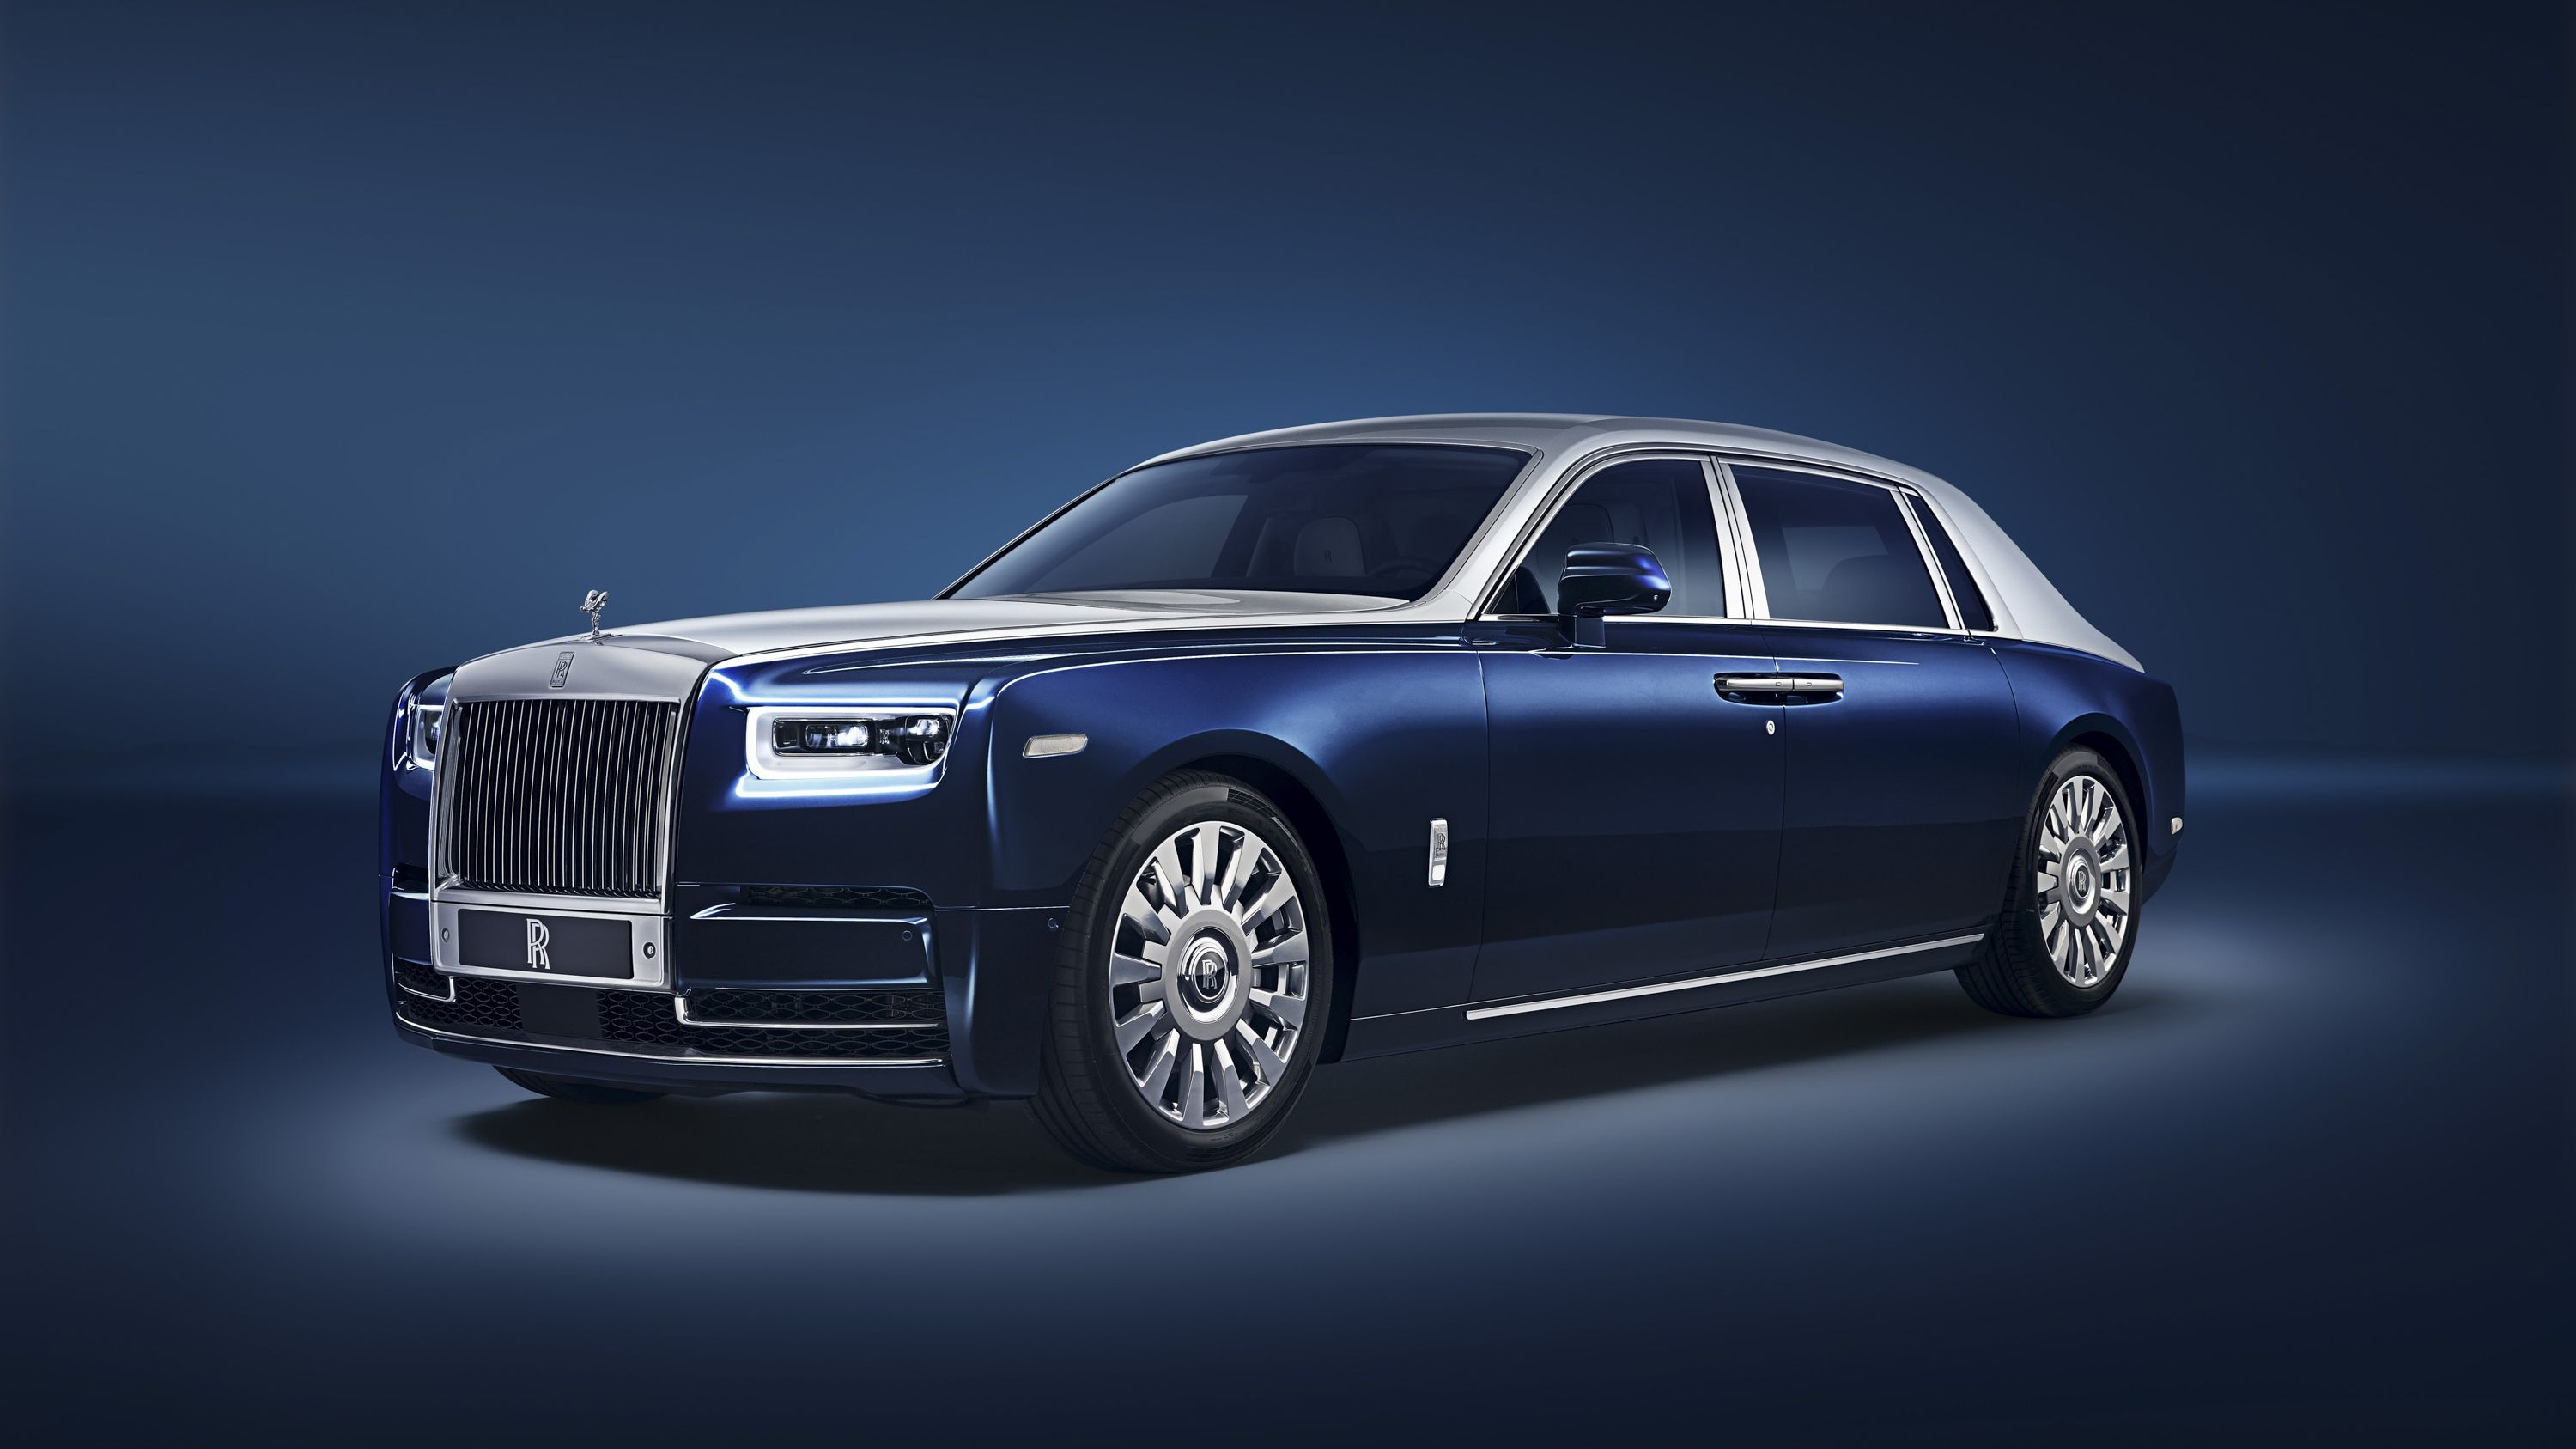 Rolls Royce S Privacy Suite Ensures That Nobody Bothers You When You Re Inside The Ew Phantom Top Speed Rolls Royce Phantom Luxury Cars Rolls Royce Rolls Royce Interior